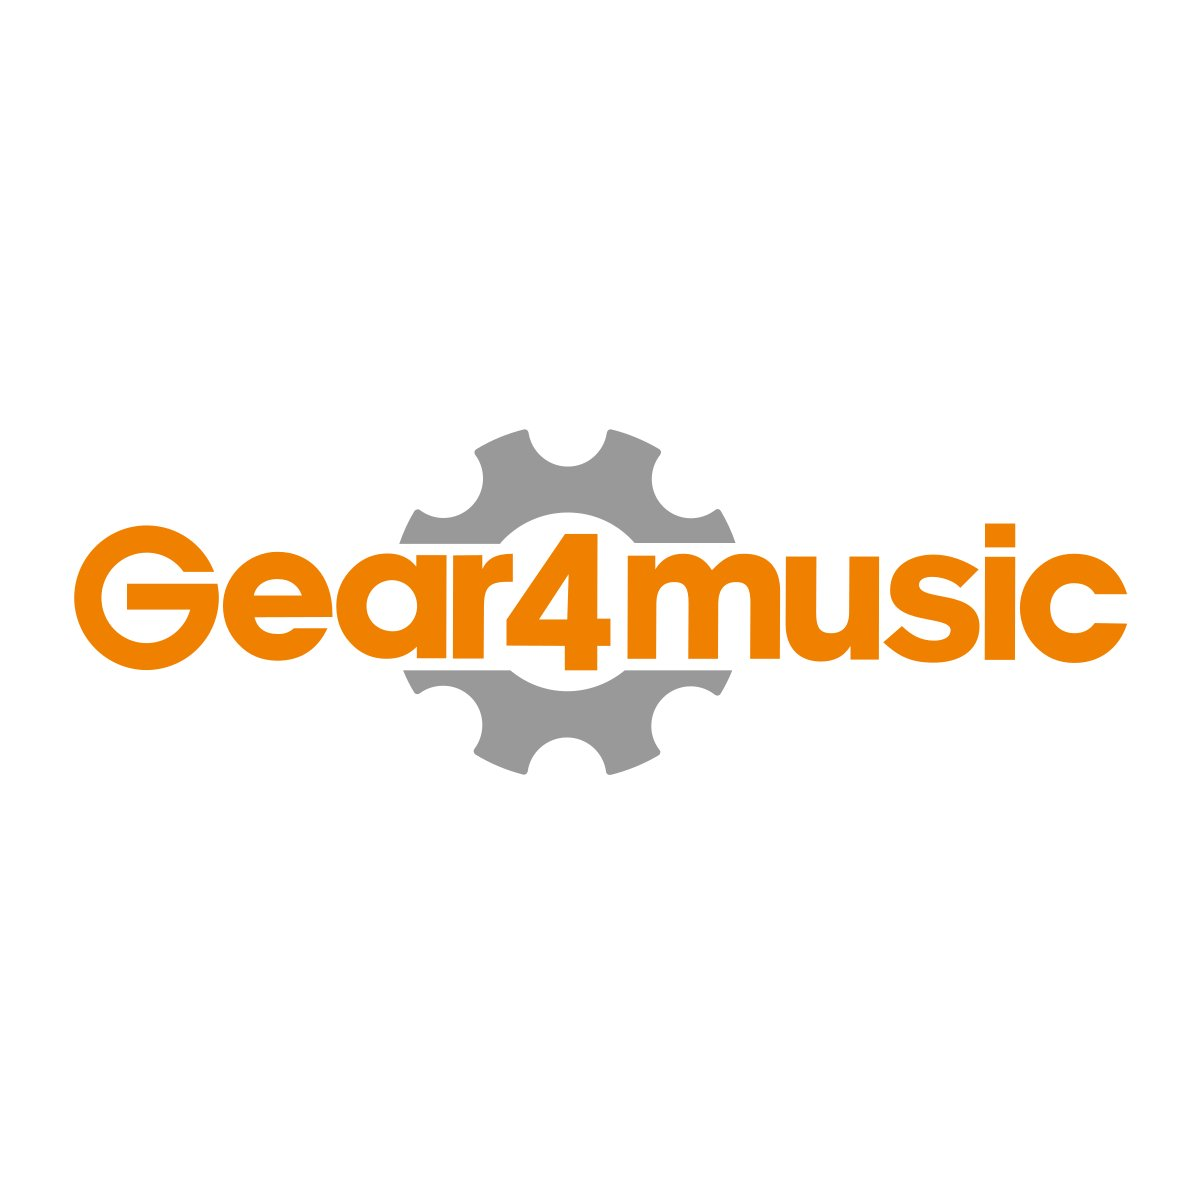 Trsátko do Gear4music, 0.71 mm